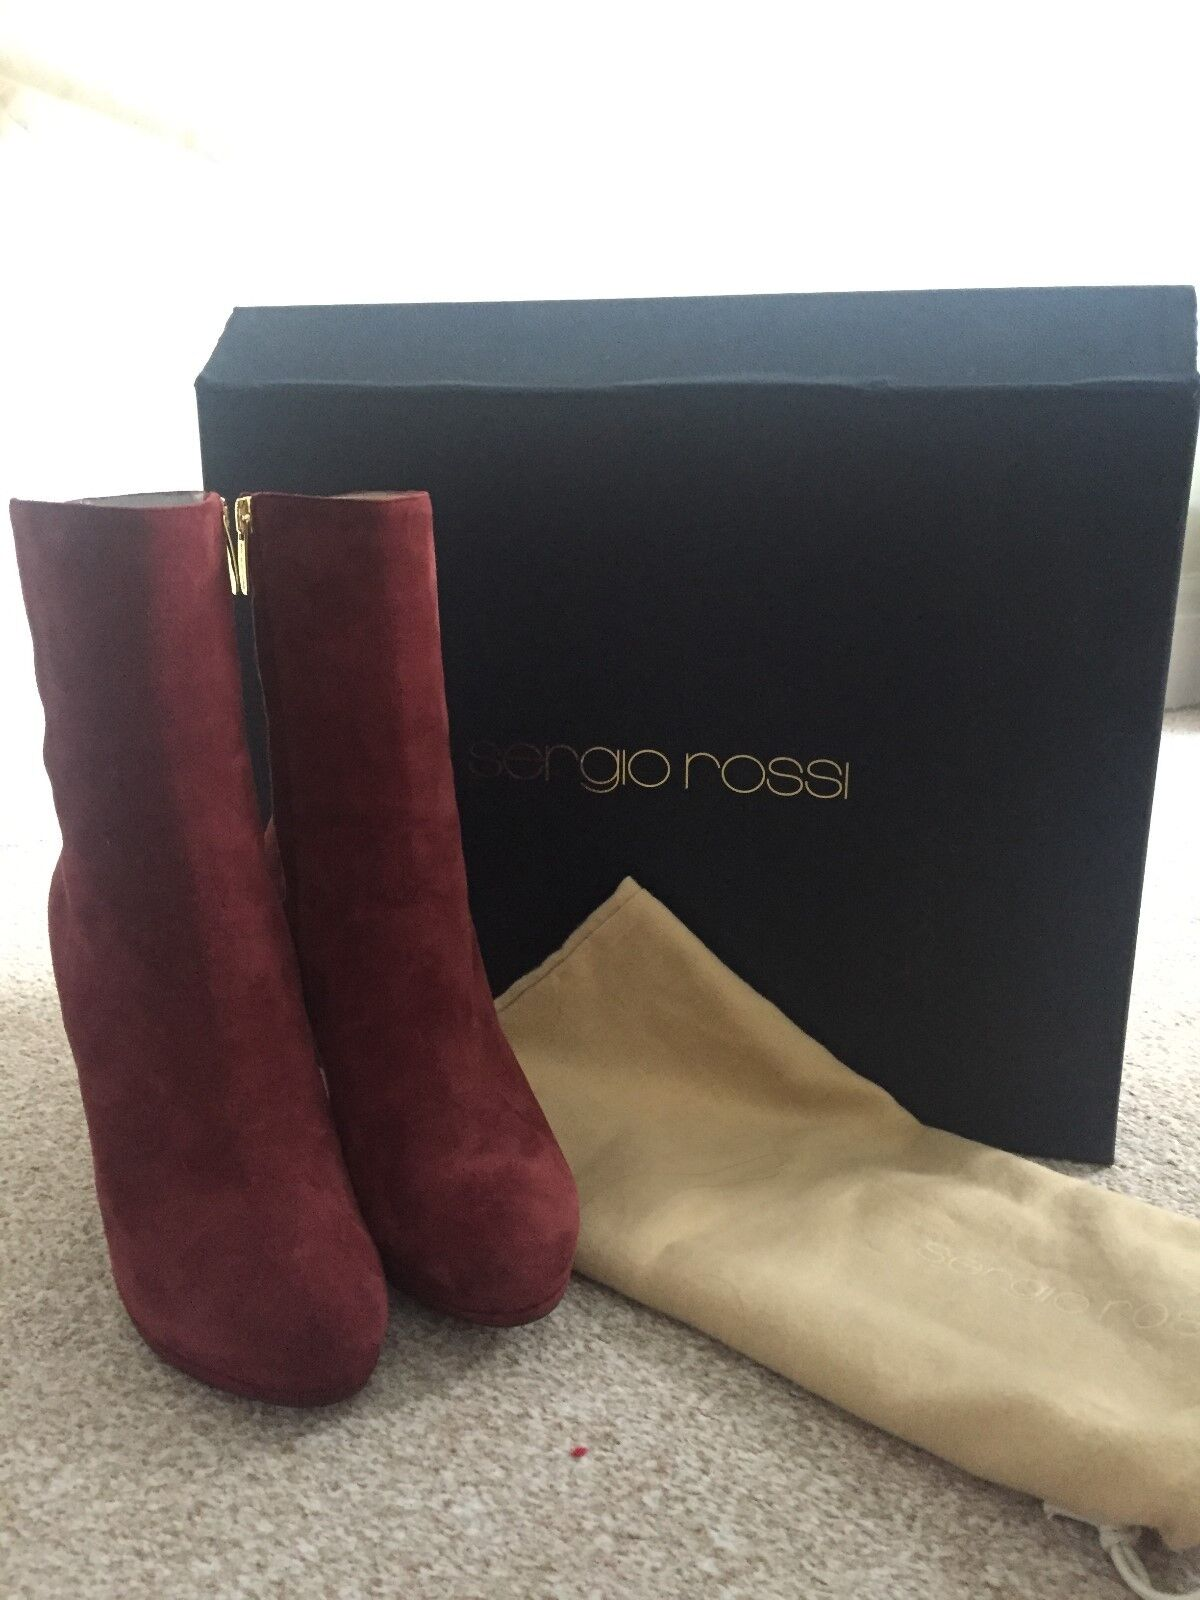 SERGIO ROSSI ANKLE BOOTS SIZE 36